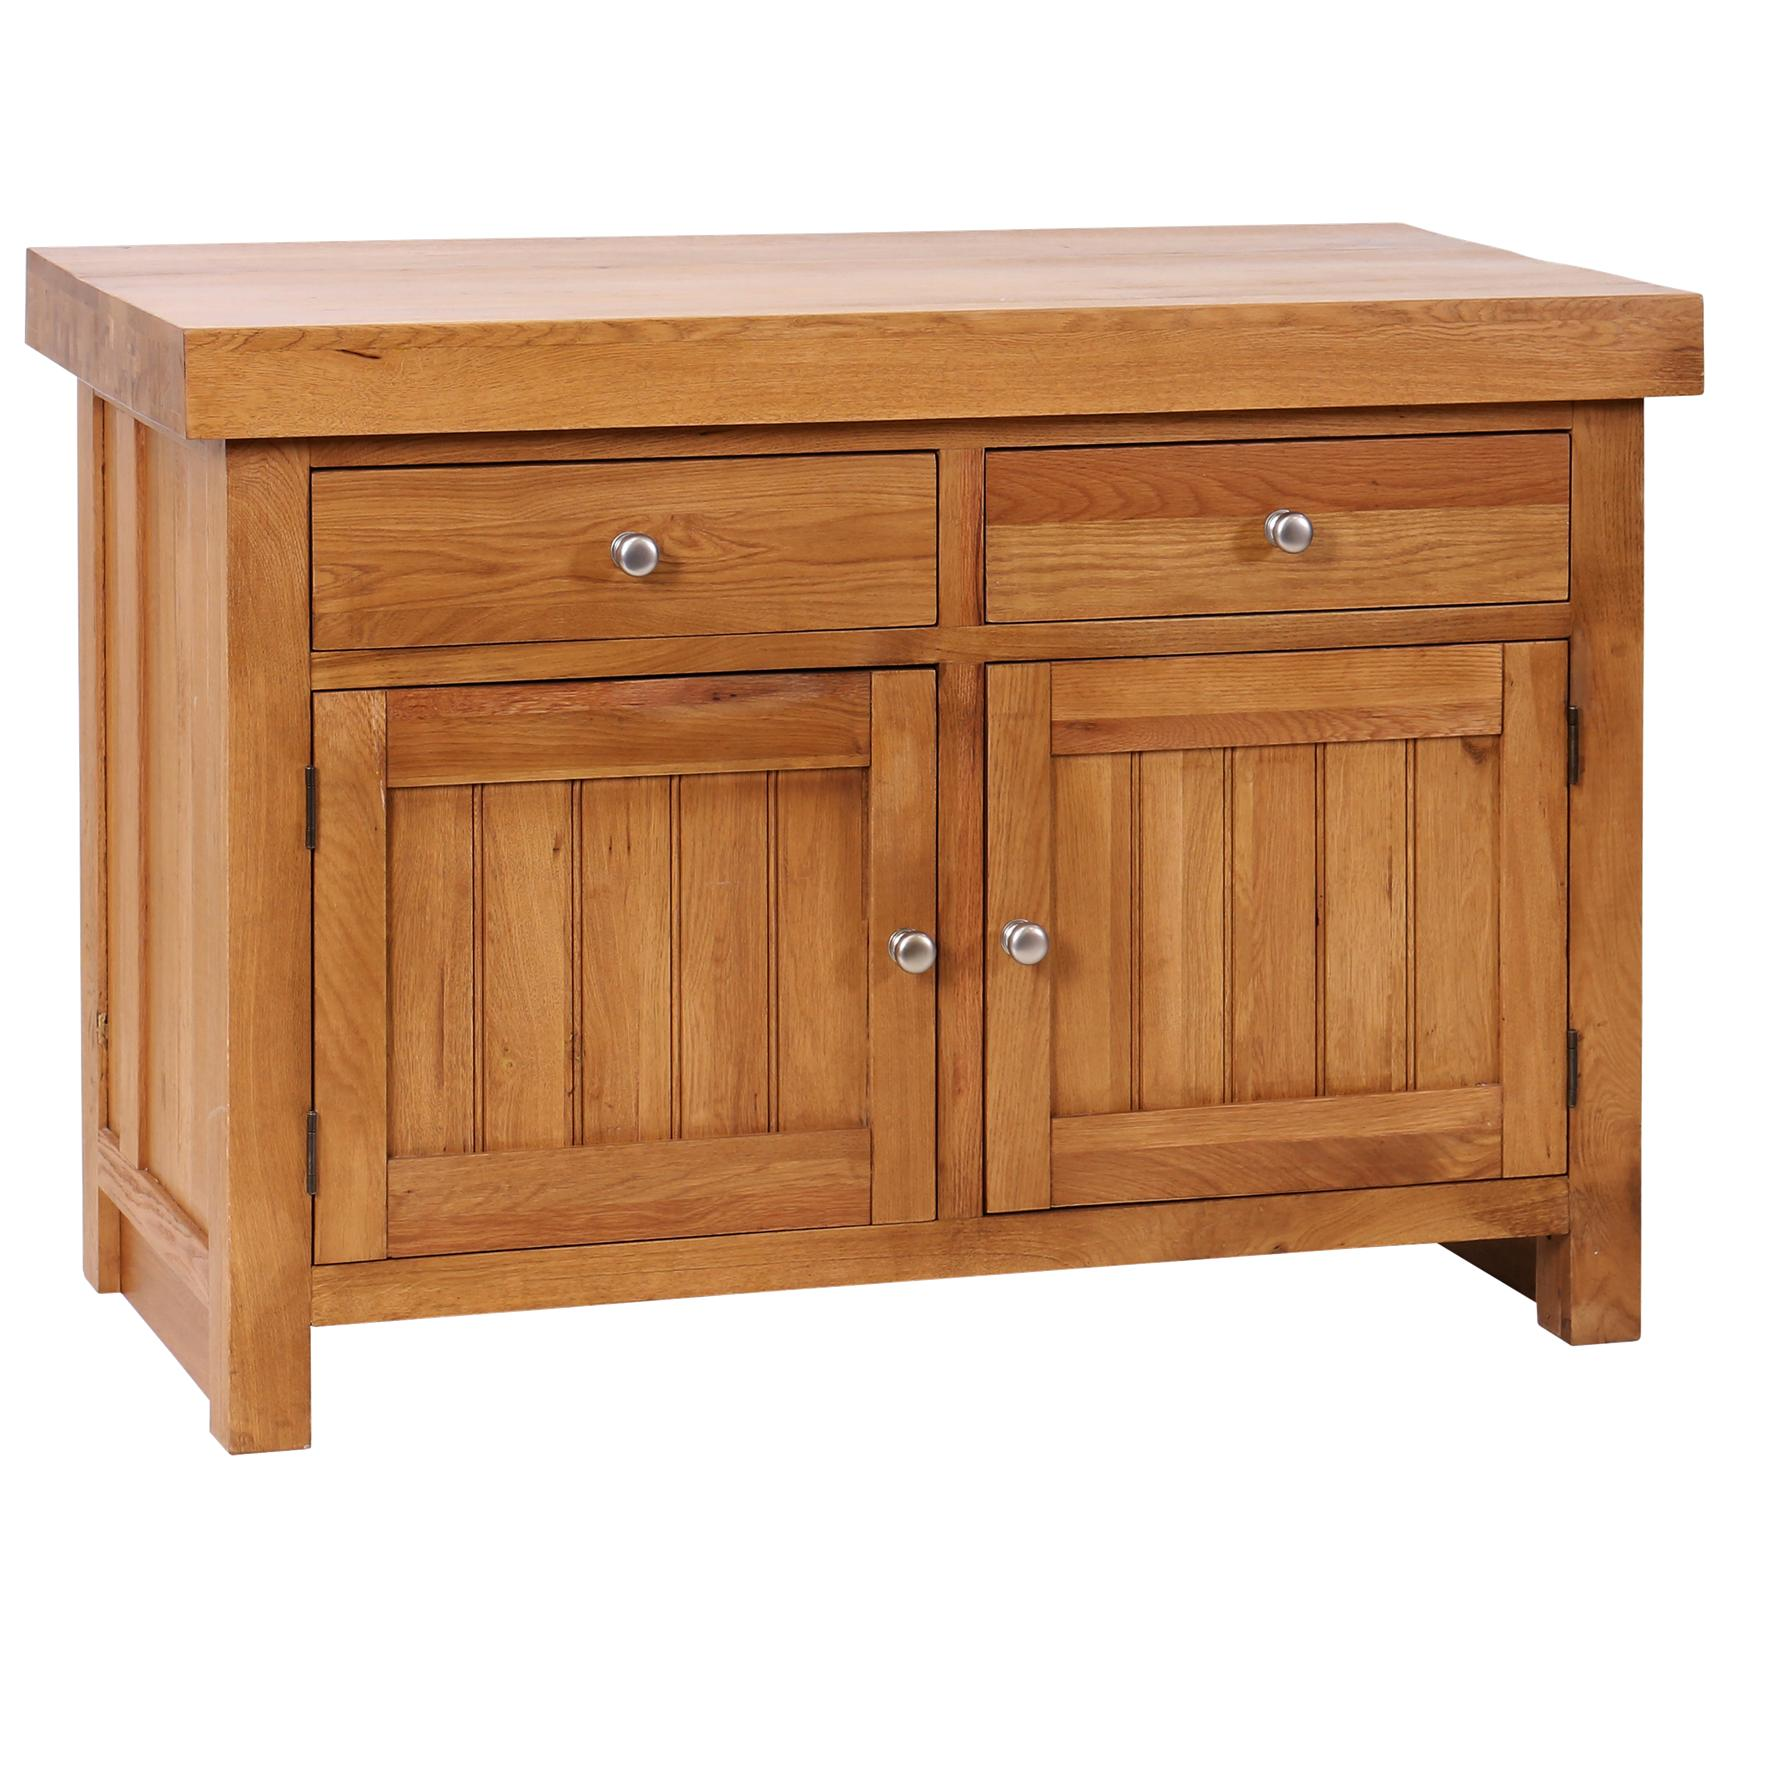 Avelyn - Butchers Block with 2 Shelves and 2 Drawers